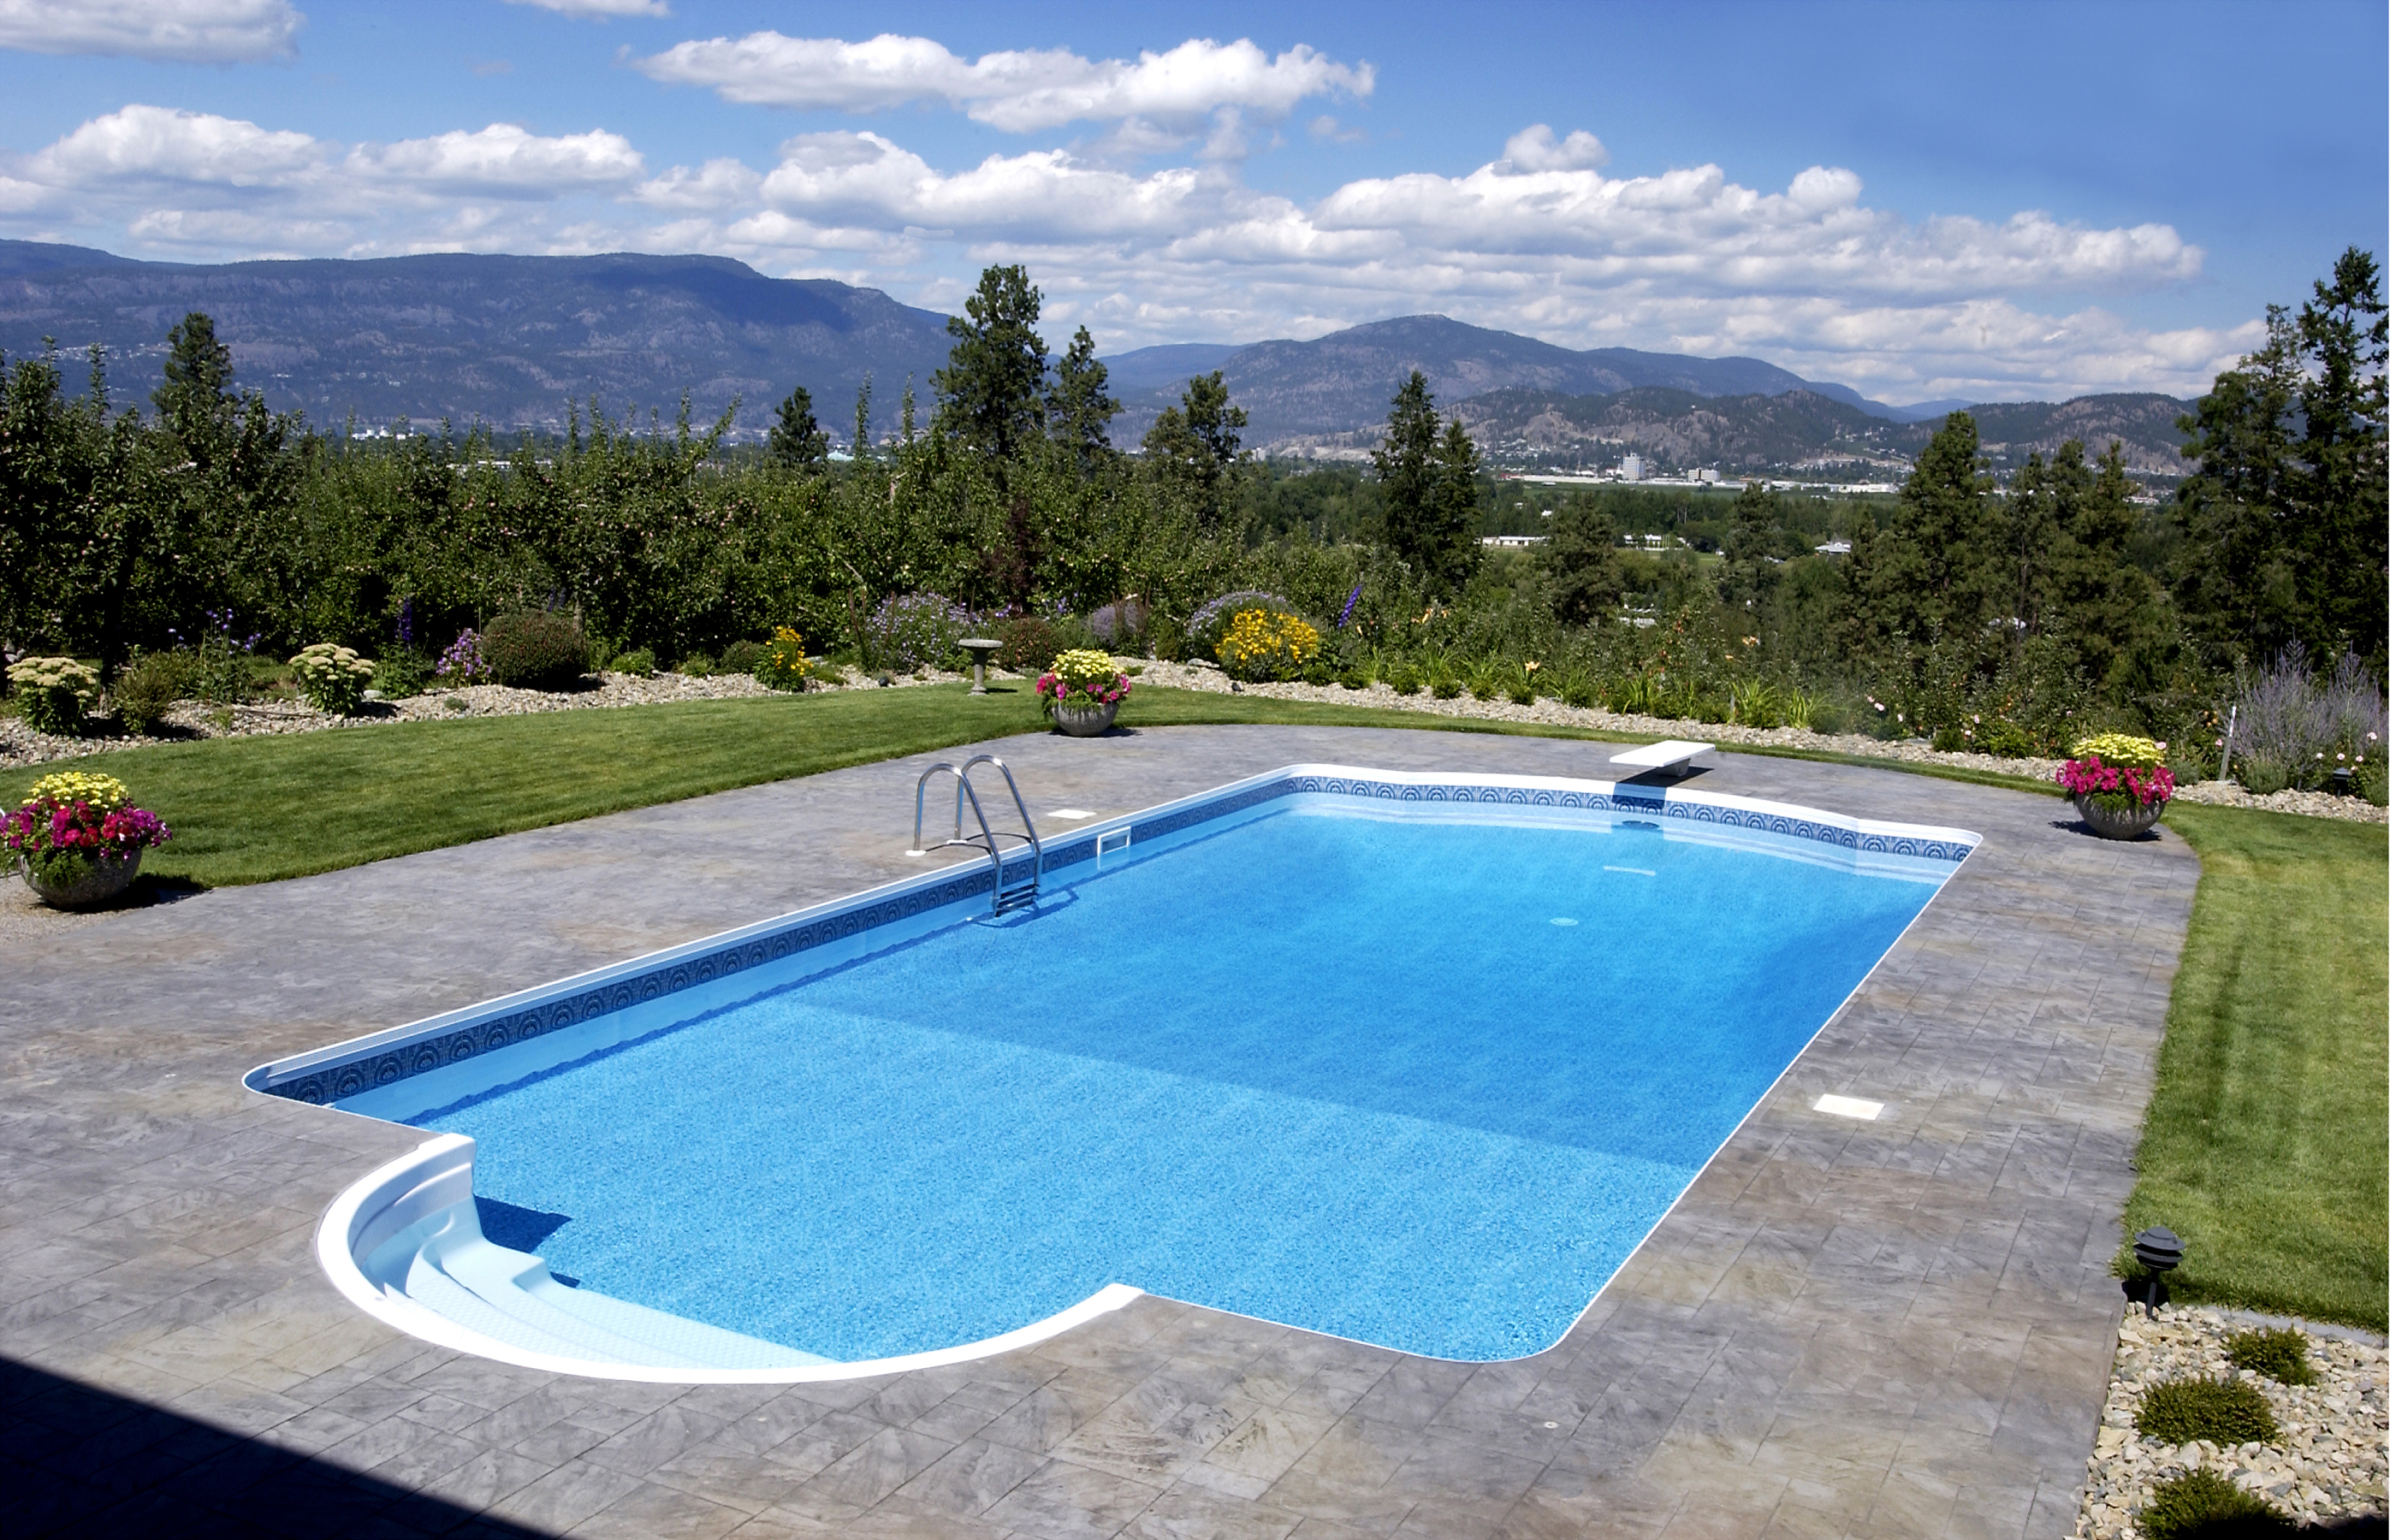 Swimming pool design for your beautiful yard homesfeed for Swimming pool designs and plans